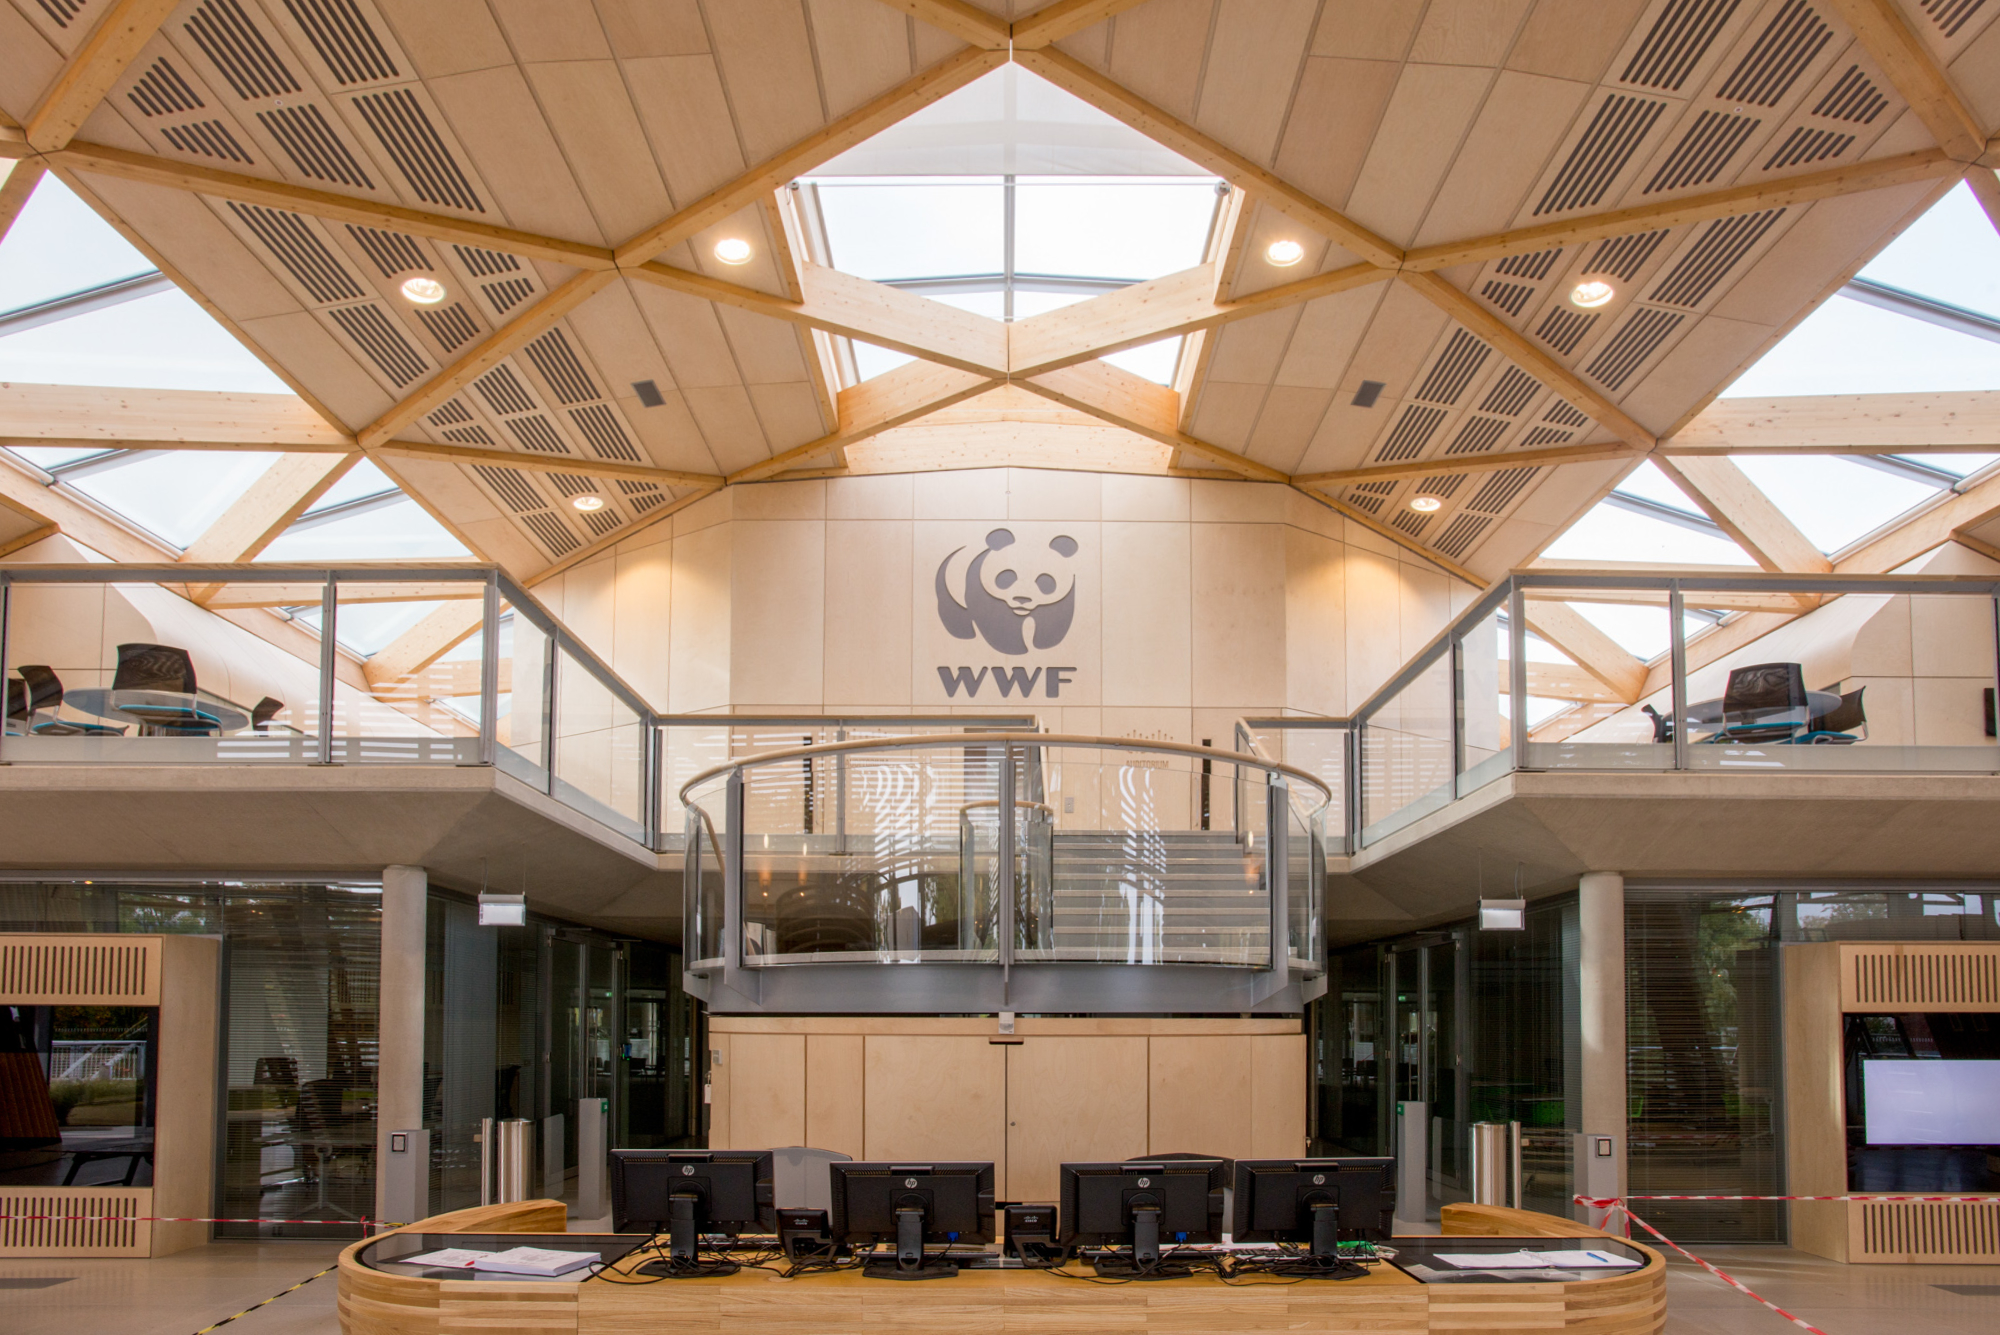 The new UK headquarters building of WWF-UK, the Living Planet Ce